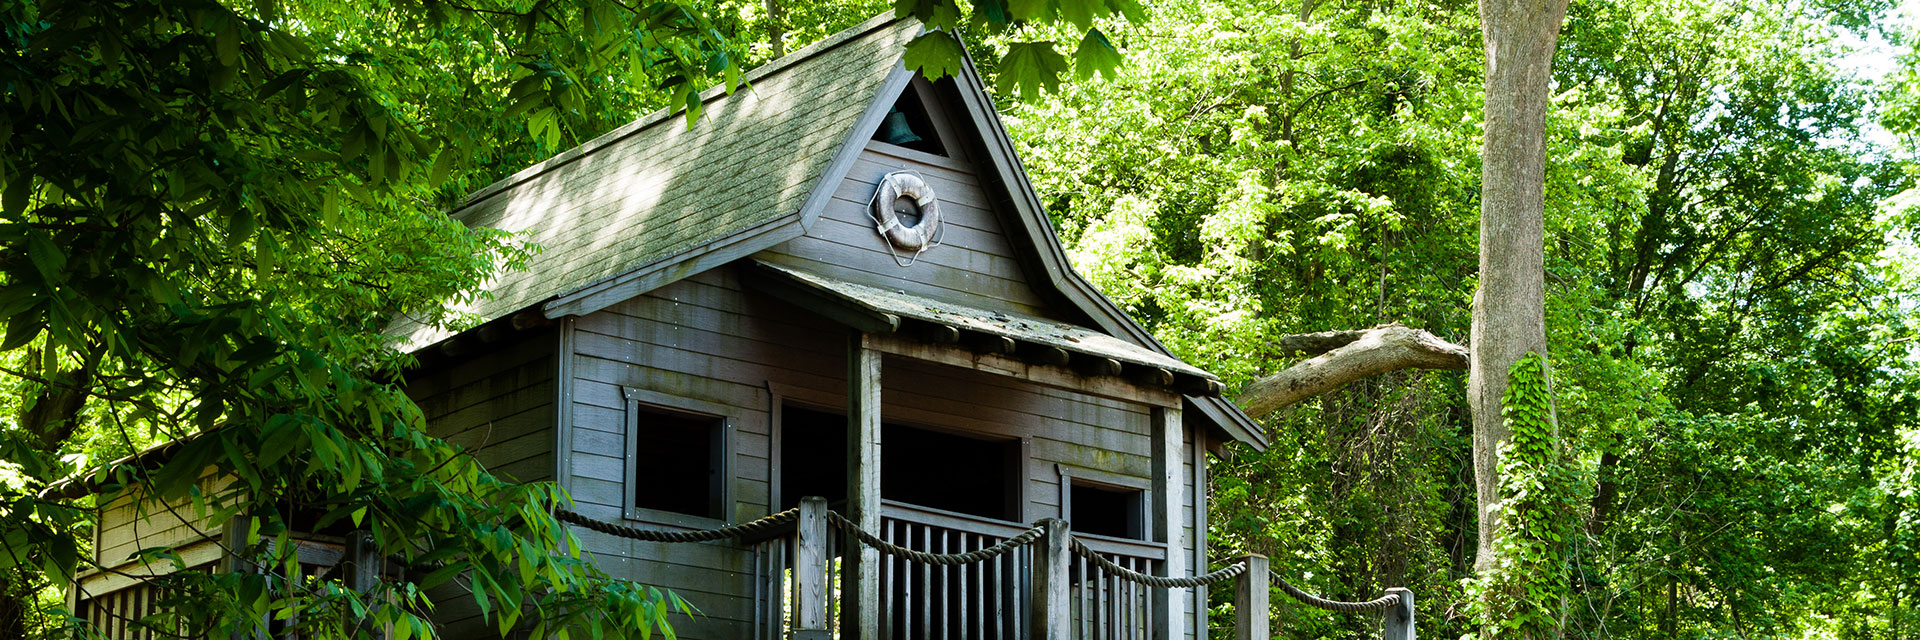 http://listassisters.com/wp-content/uploads/2018/12/Contact-Tree-House.jpg